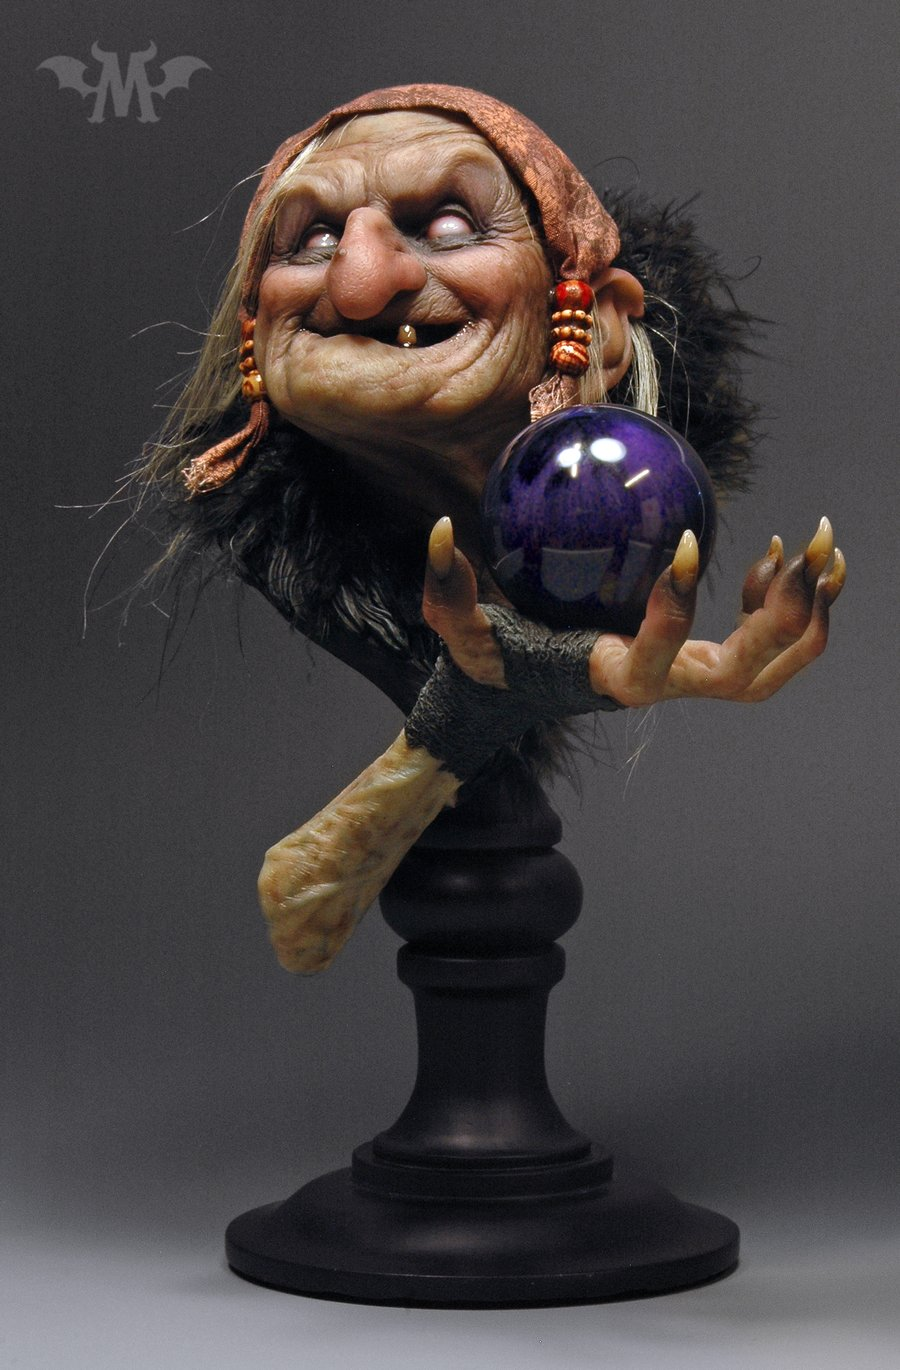 1-witch-3d-models-by-andy-bergholtz